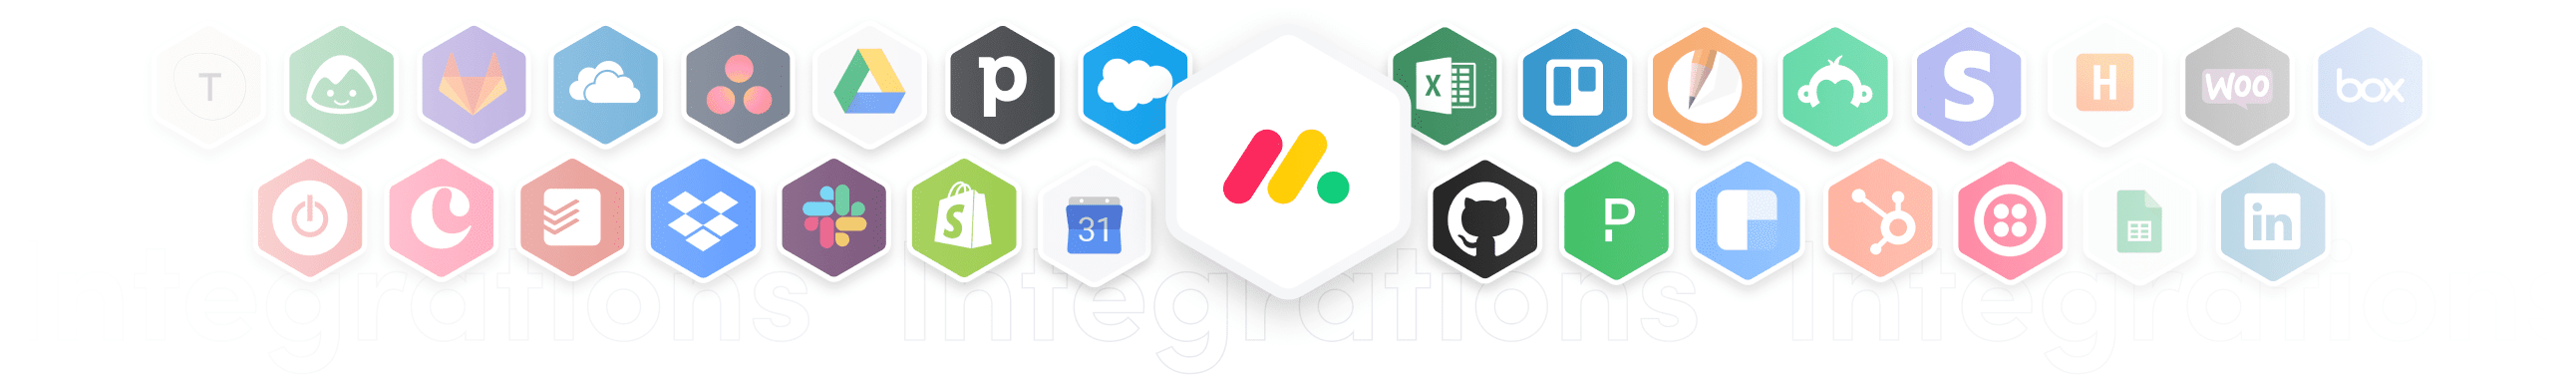 Integrations logos, such as- Excel, Shopify, Slack, Asana etc.